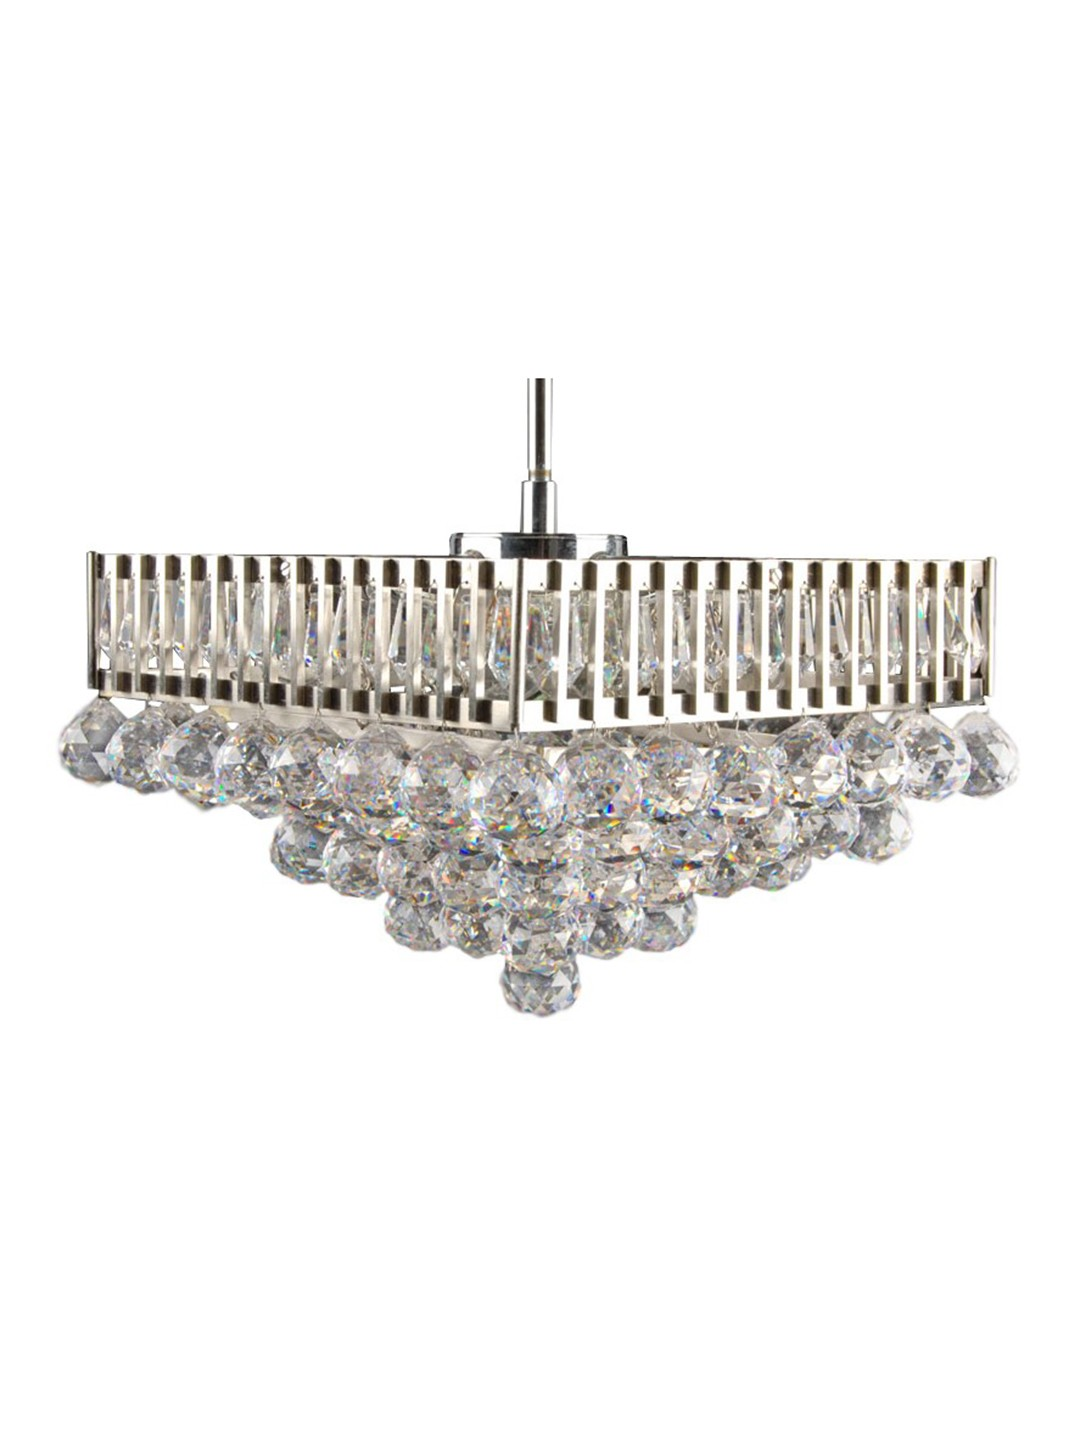 Crystal Balls Tiered Square Chandelier